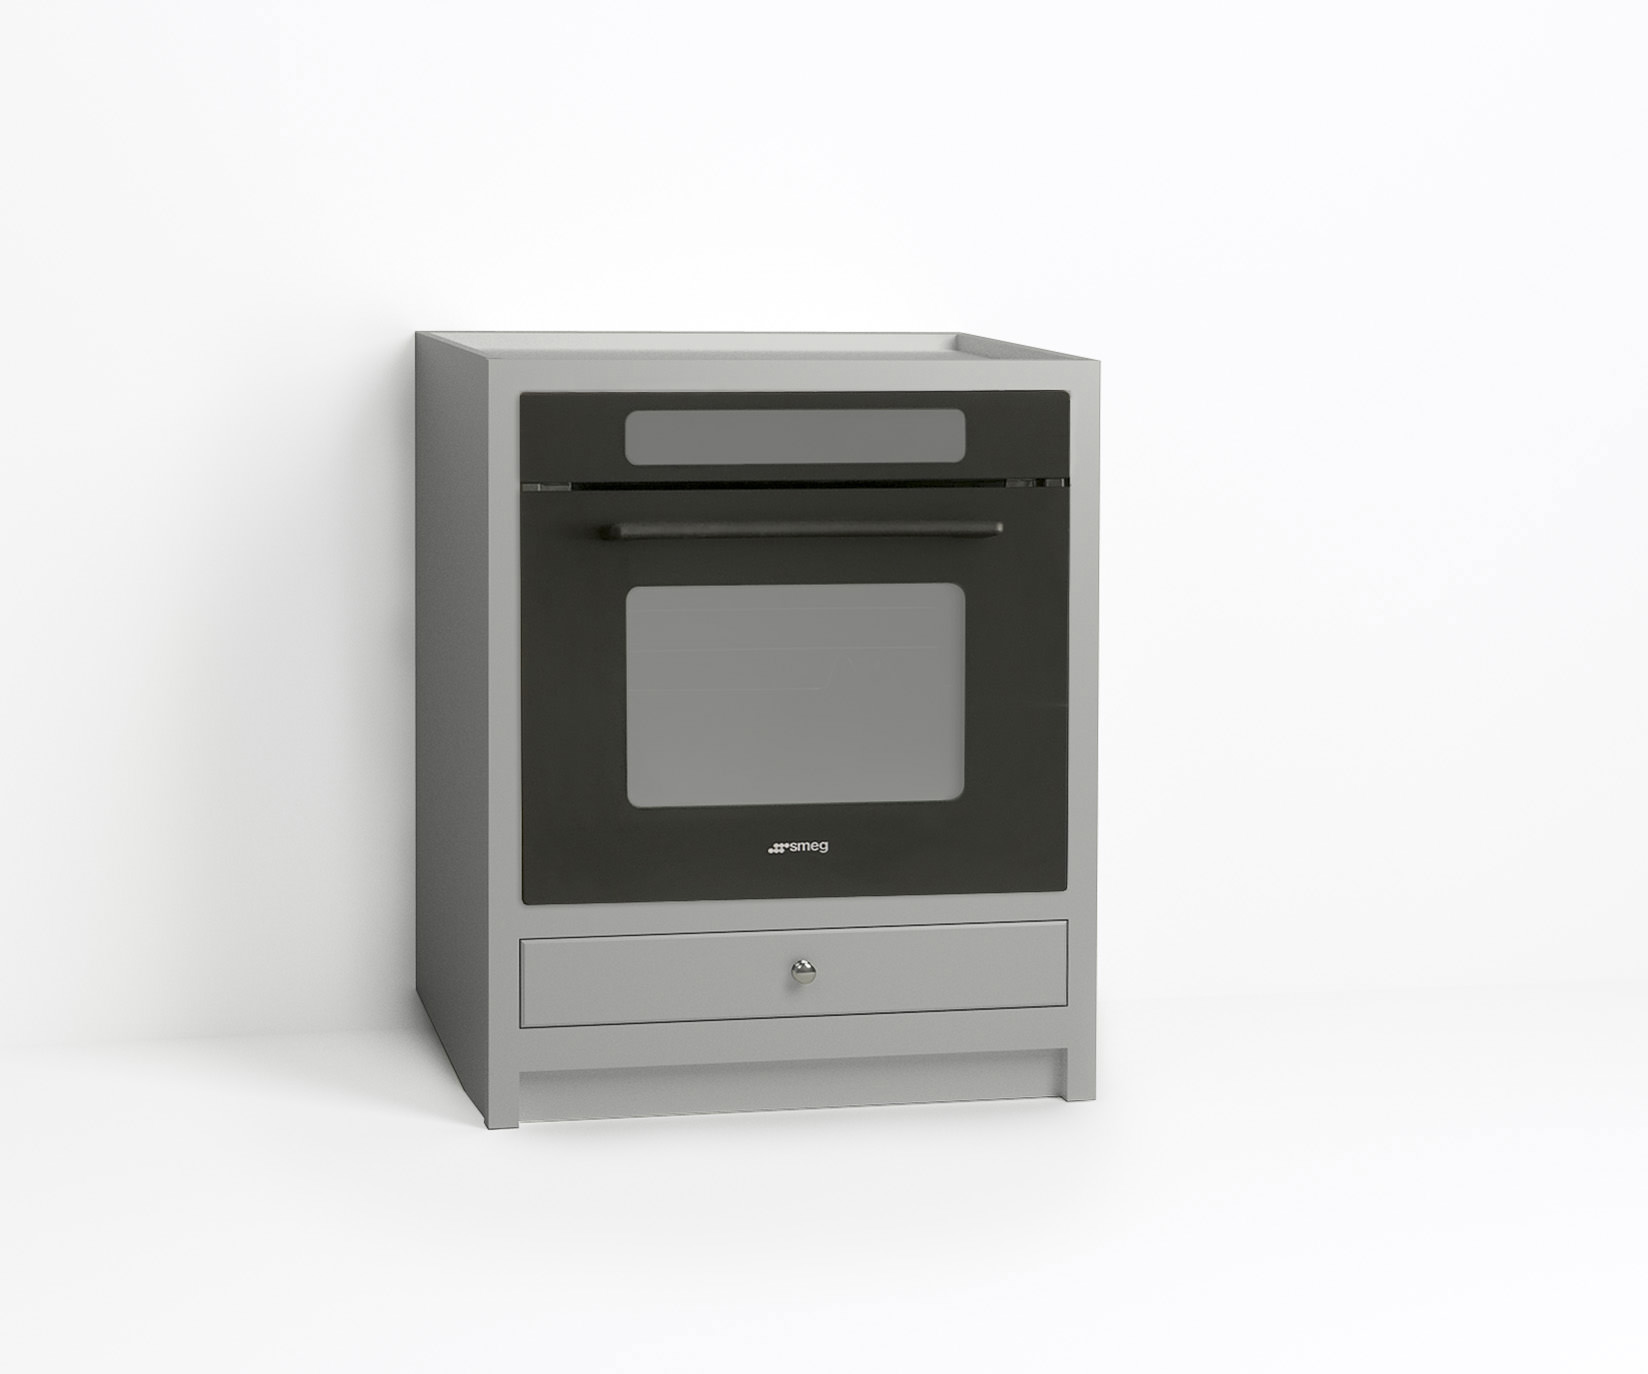 Base oven cabinets - 670mm Single Oven Cabinet